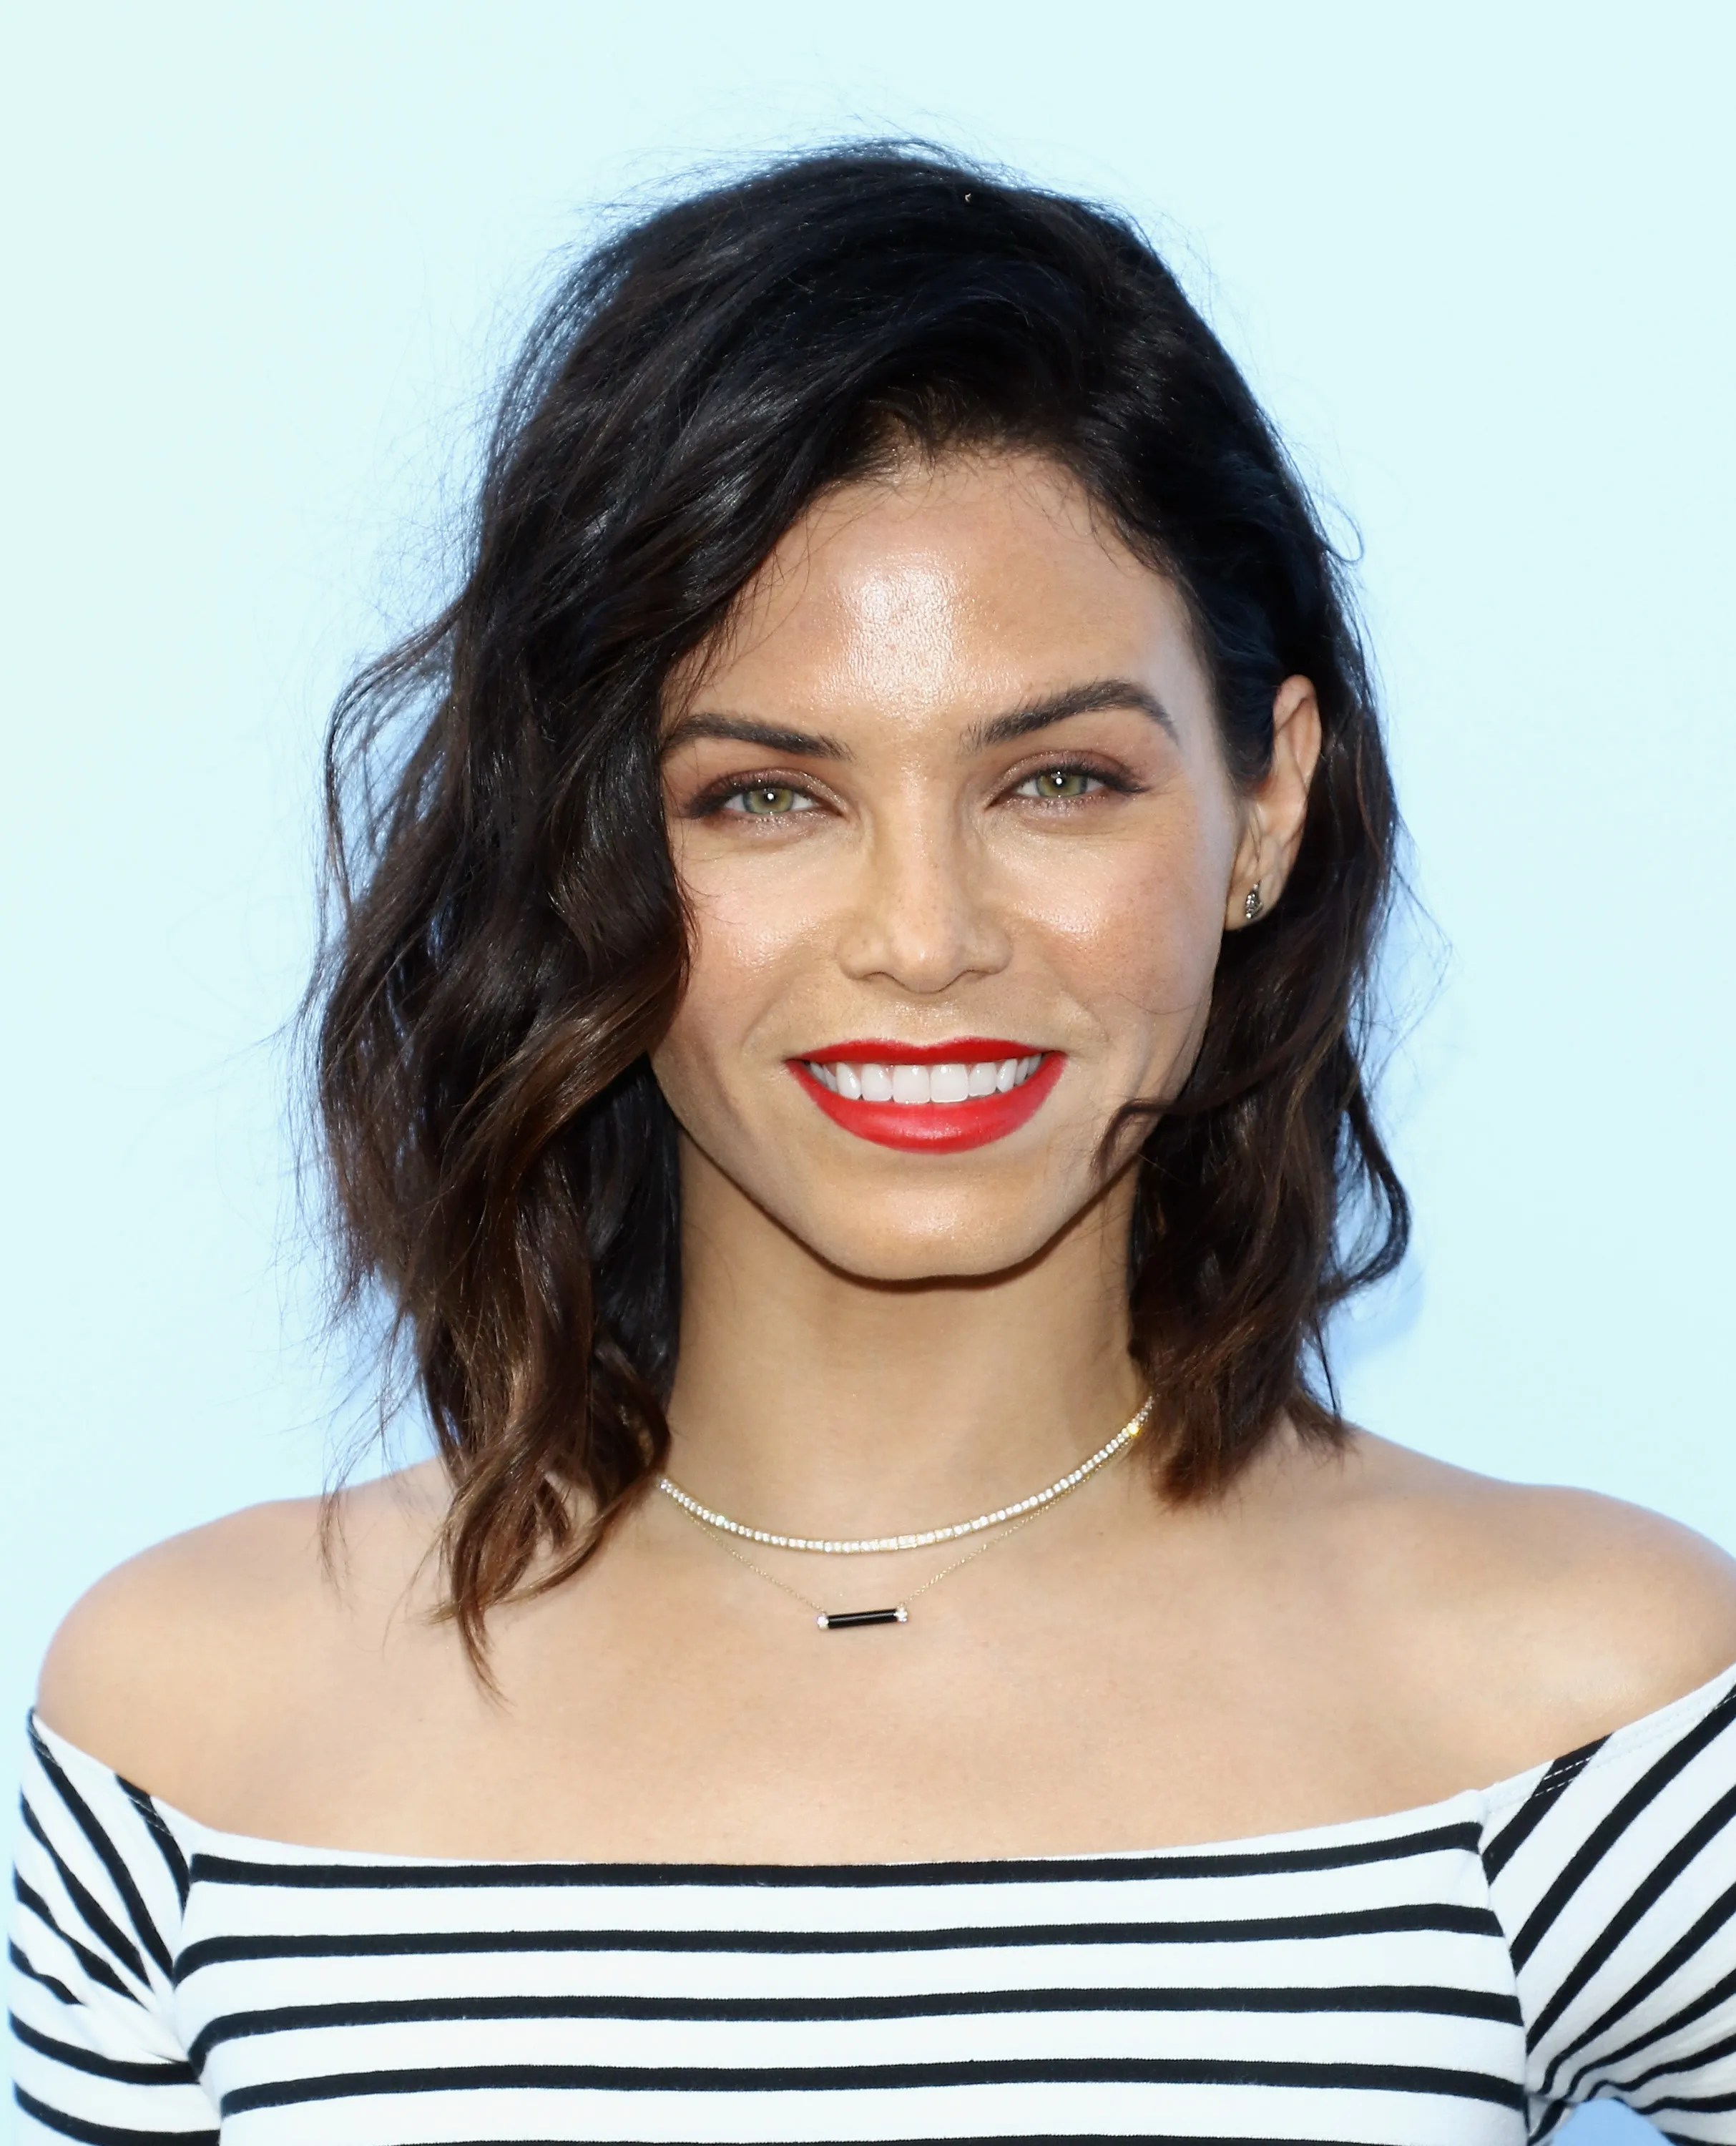 Jenna Dewan Tatum's New Haircut Is Subtle—but A Whole Lot Edgier